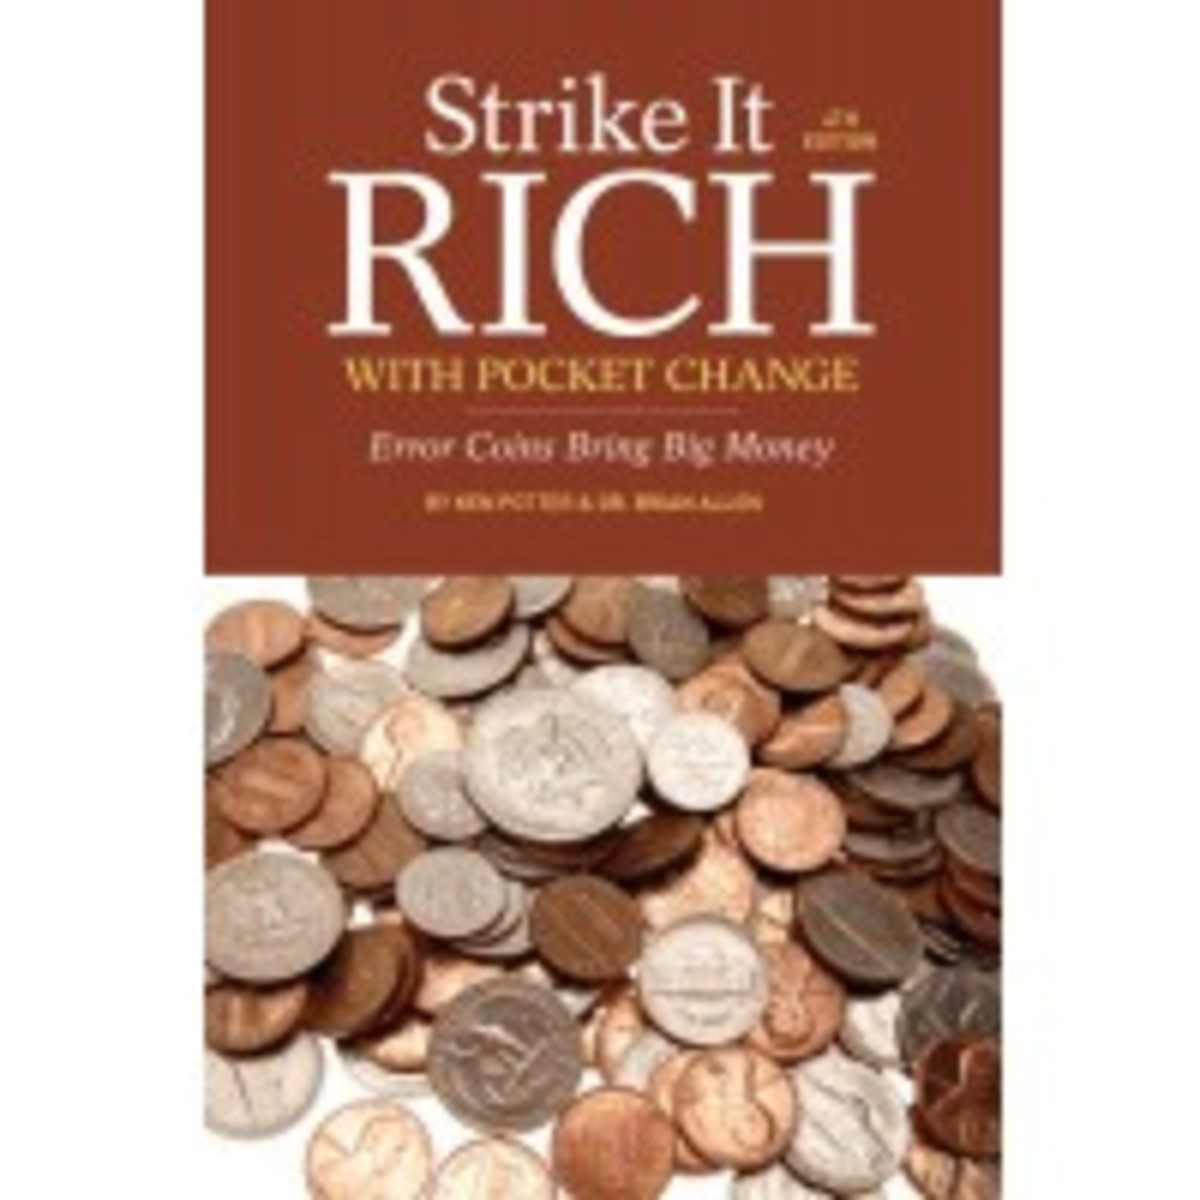 Get your copy of Strike It Rich with Pocket Change, 4th edition today!